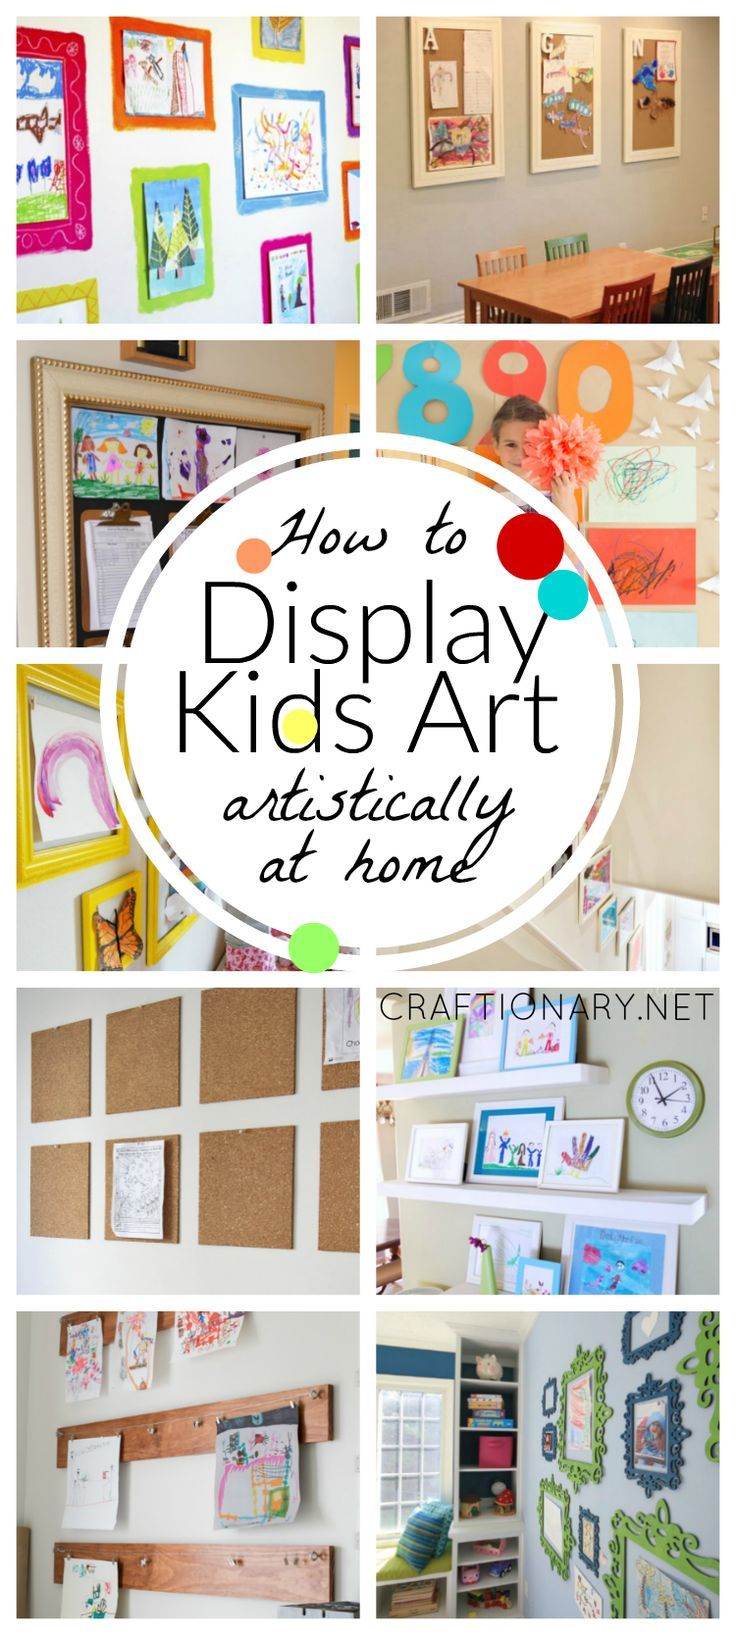 Best ideas to display kids art at homeToni Anderson (Happy Housewife)